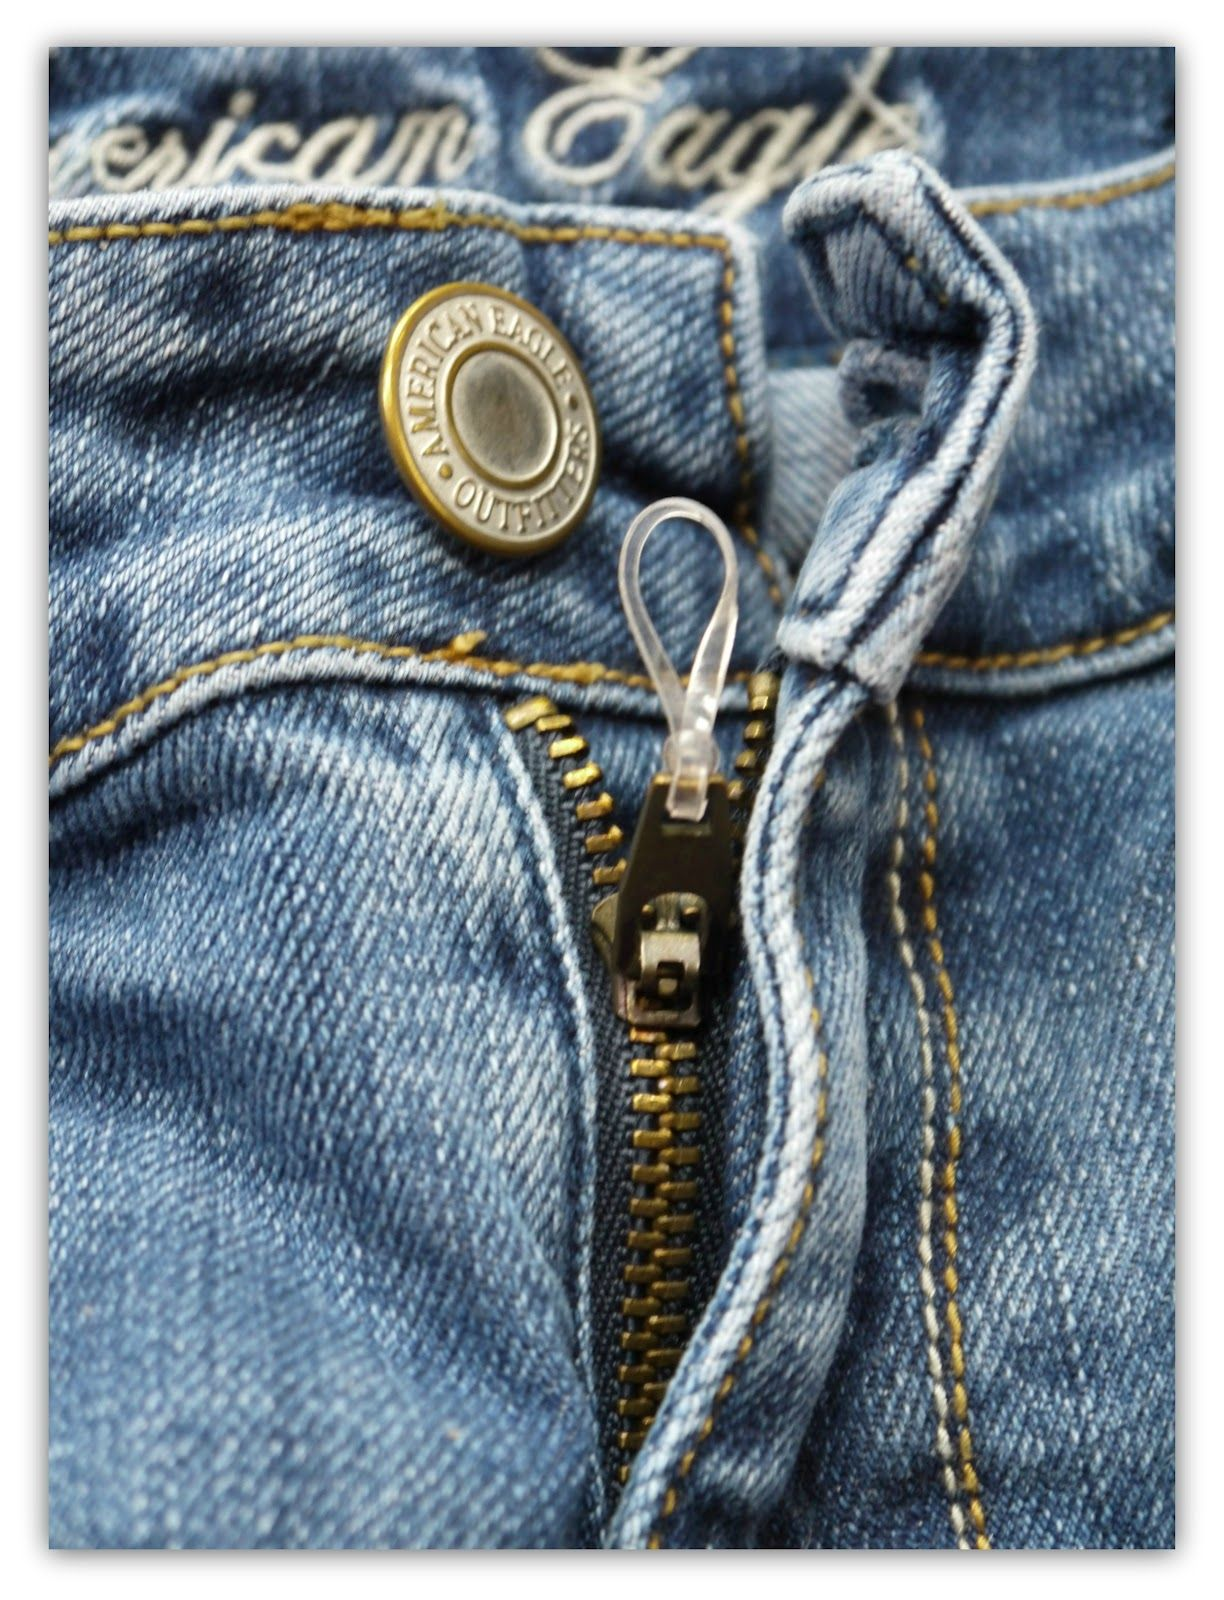 Quick fixes for loose zippers and too tight to button jeans quick fixes for loose zippers and too tight to button jeans solutioingenieria Images